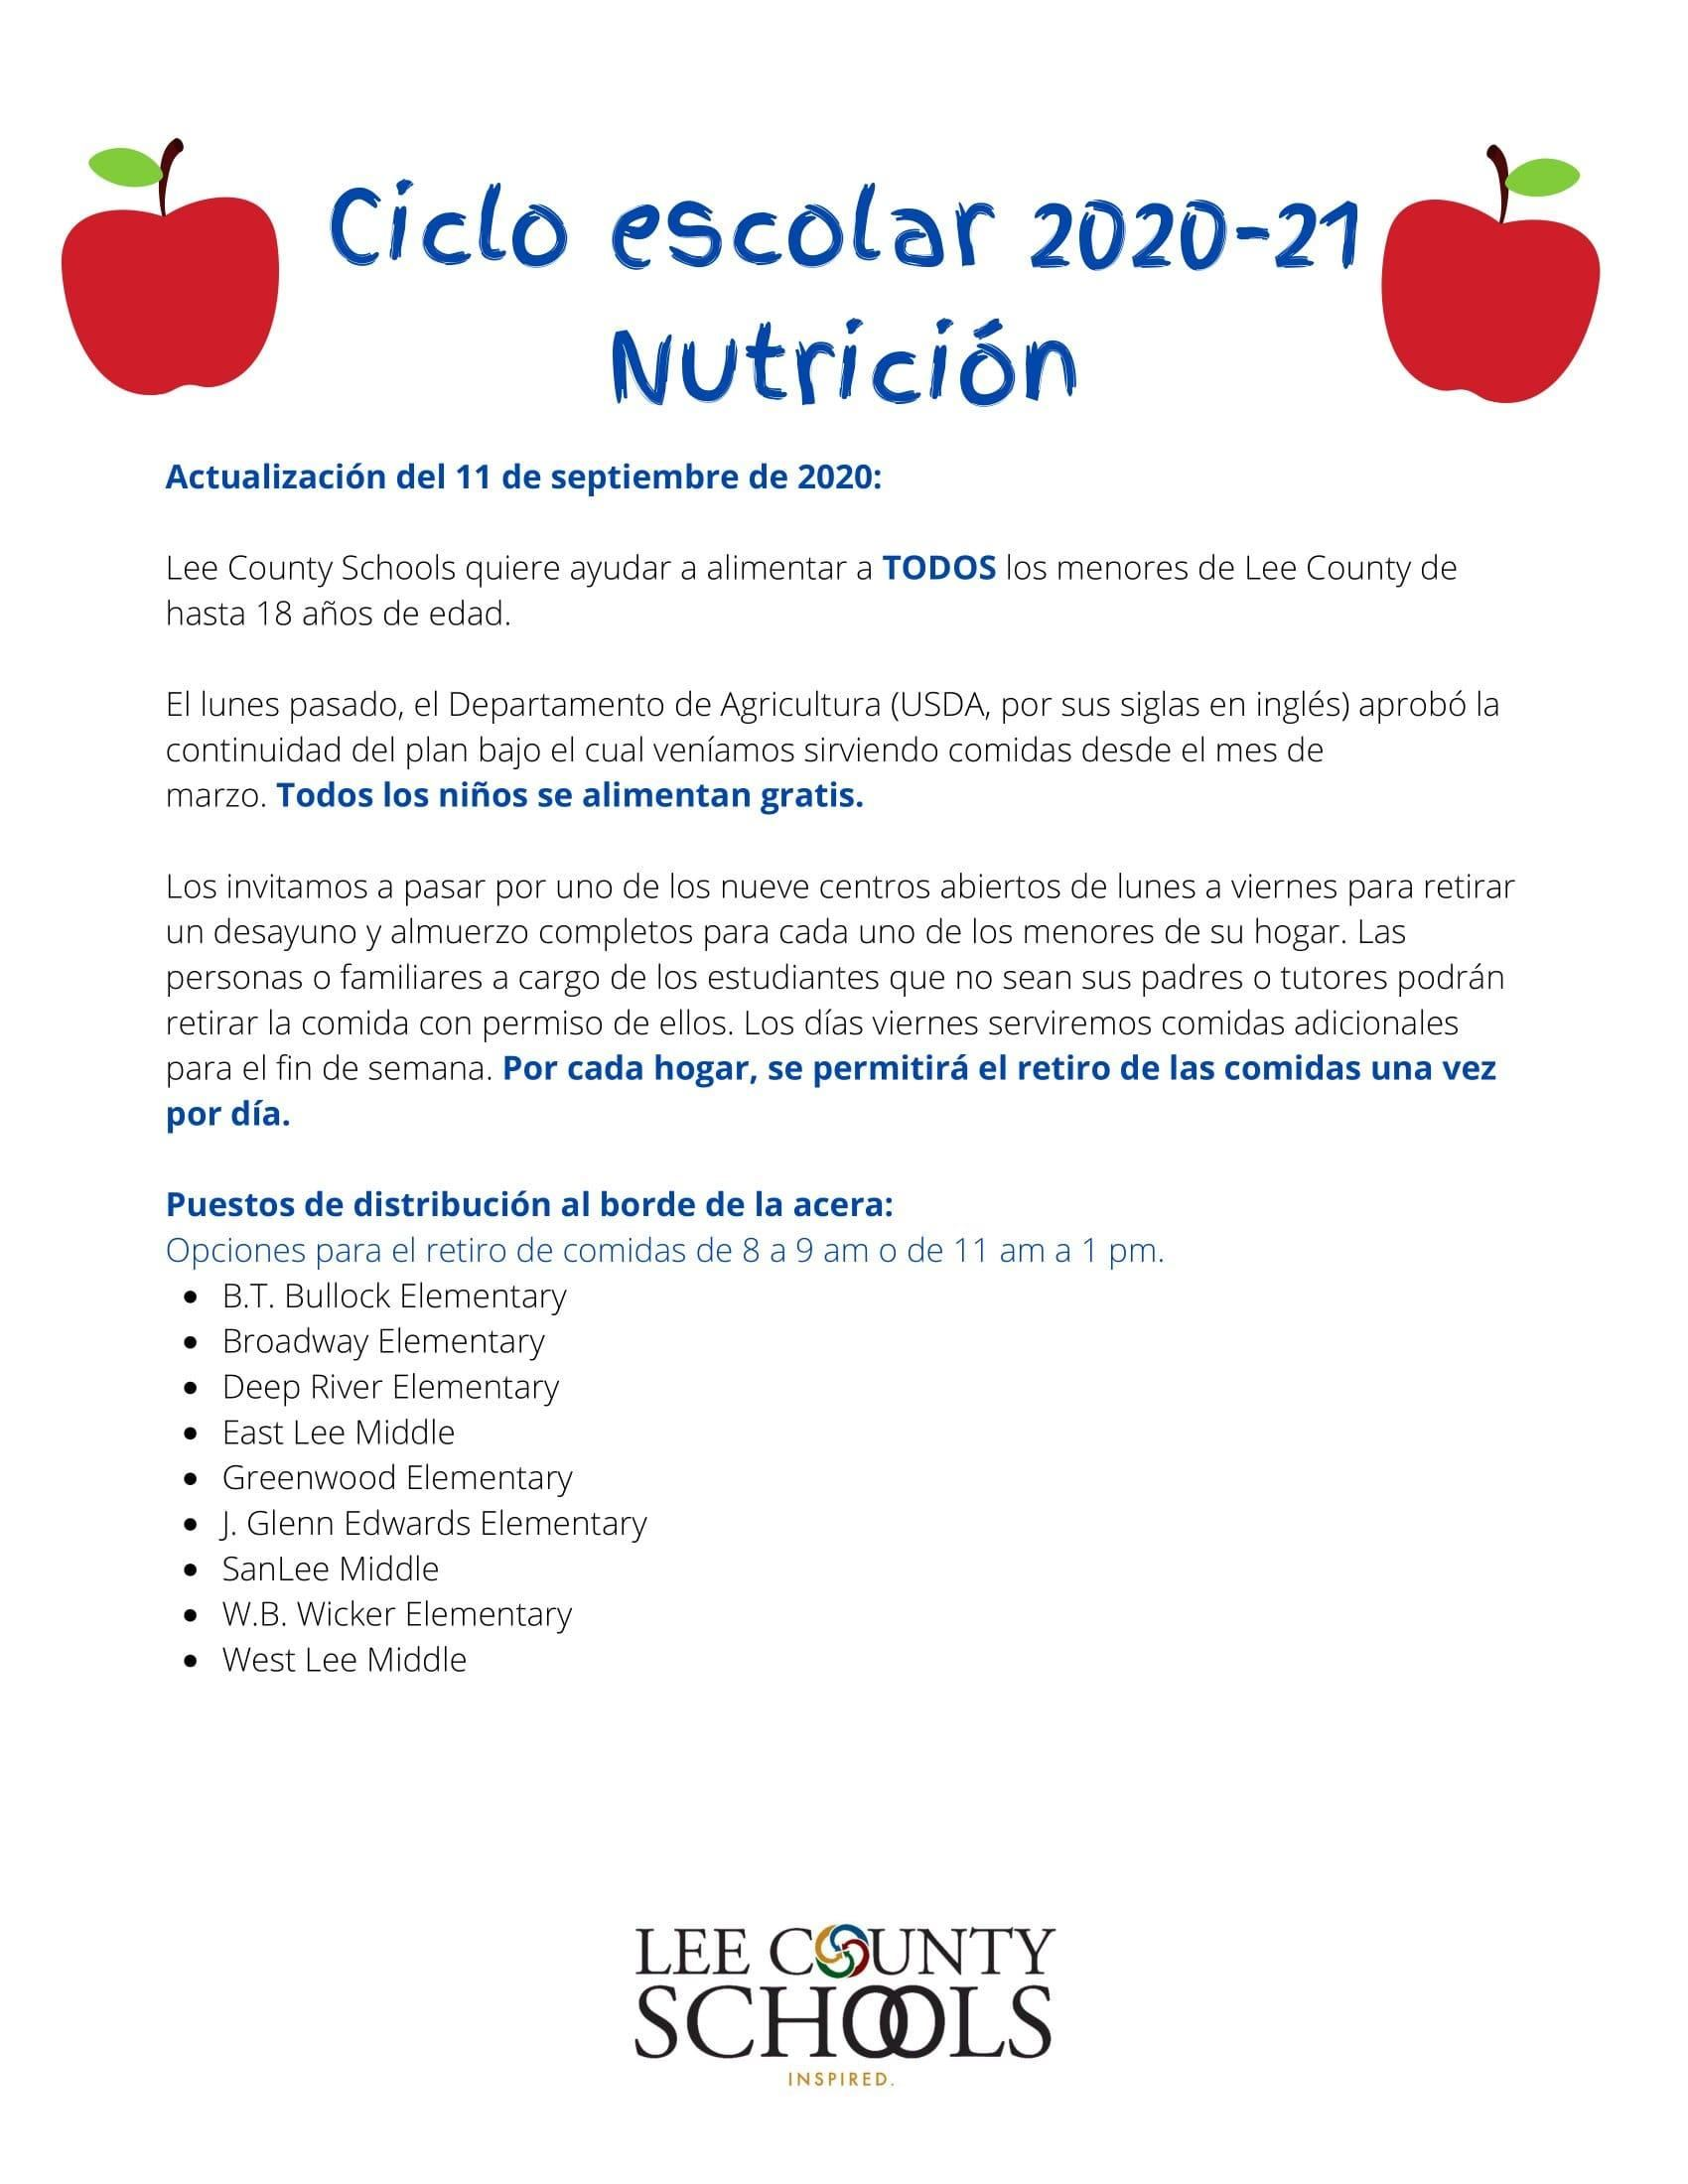 2020-21 School Year Nutrition Update on September 11, 2020 in Spanish.